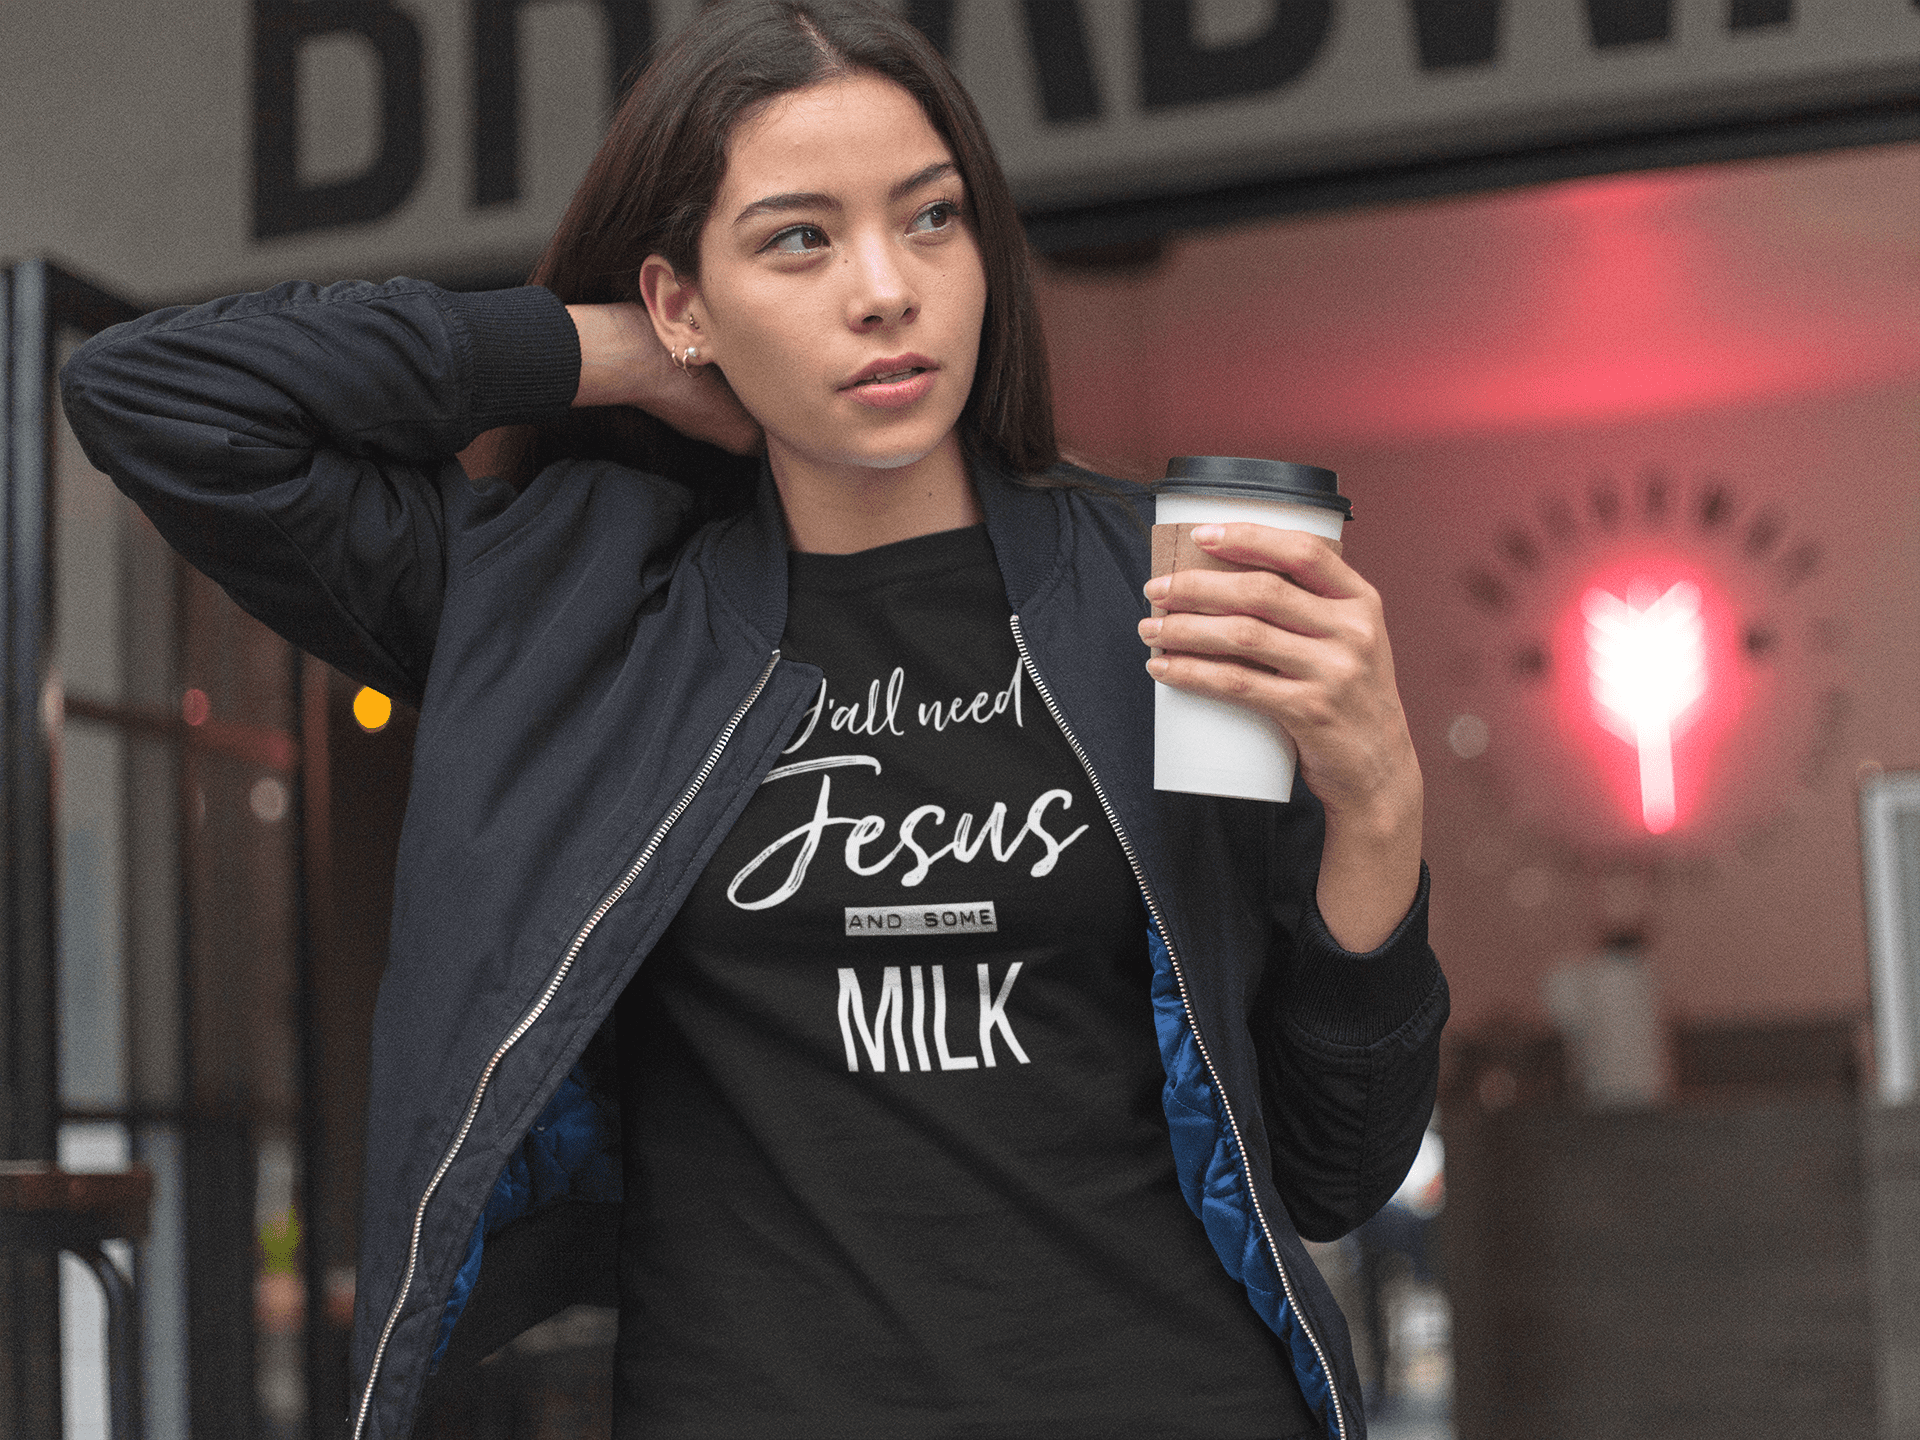 jesus milk t-shirt mock